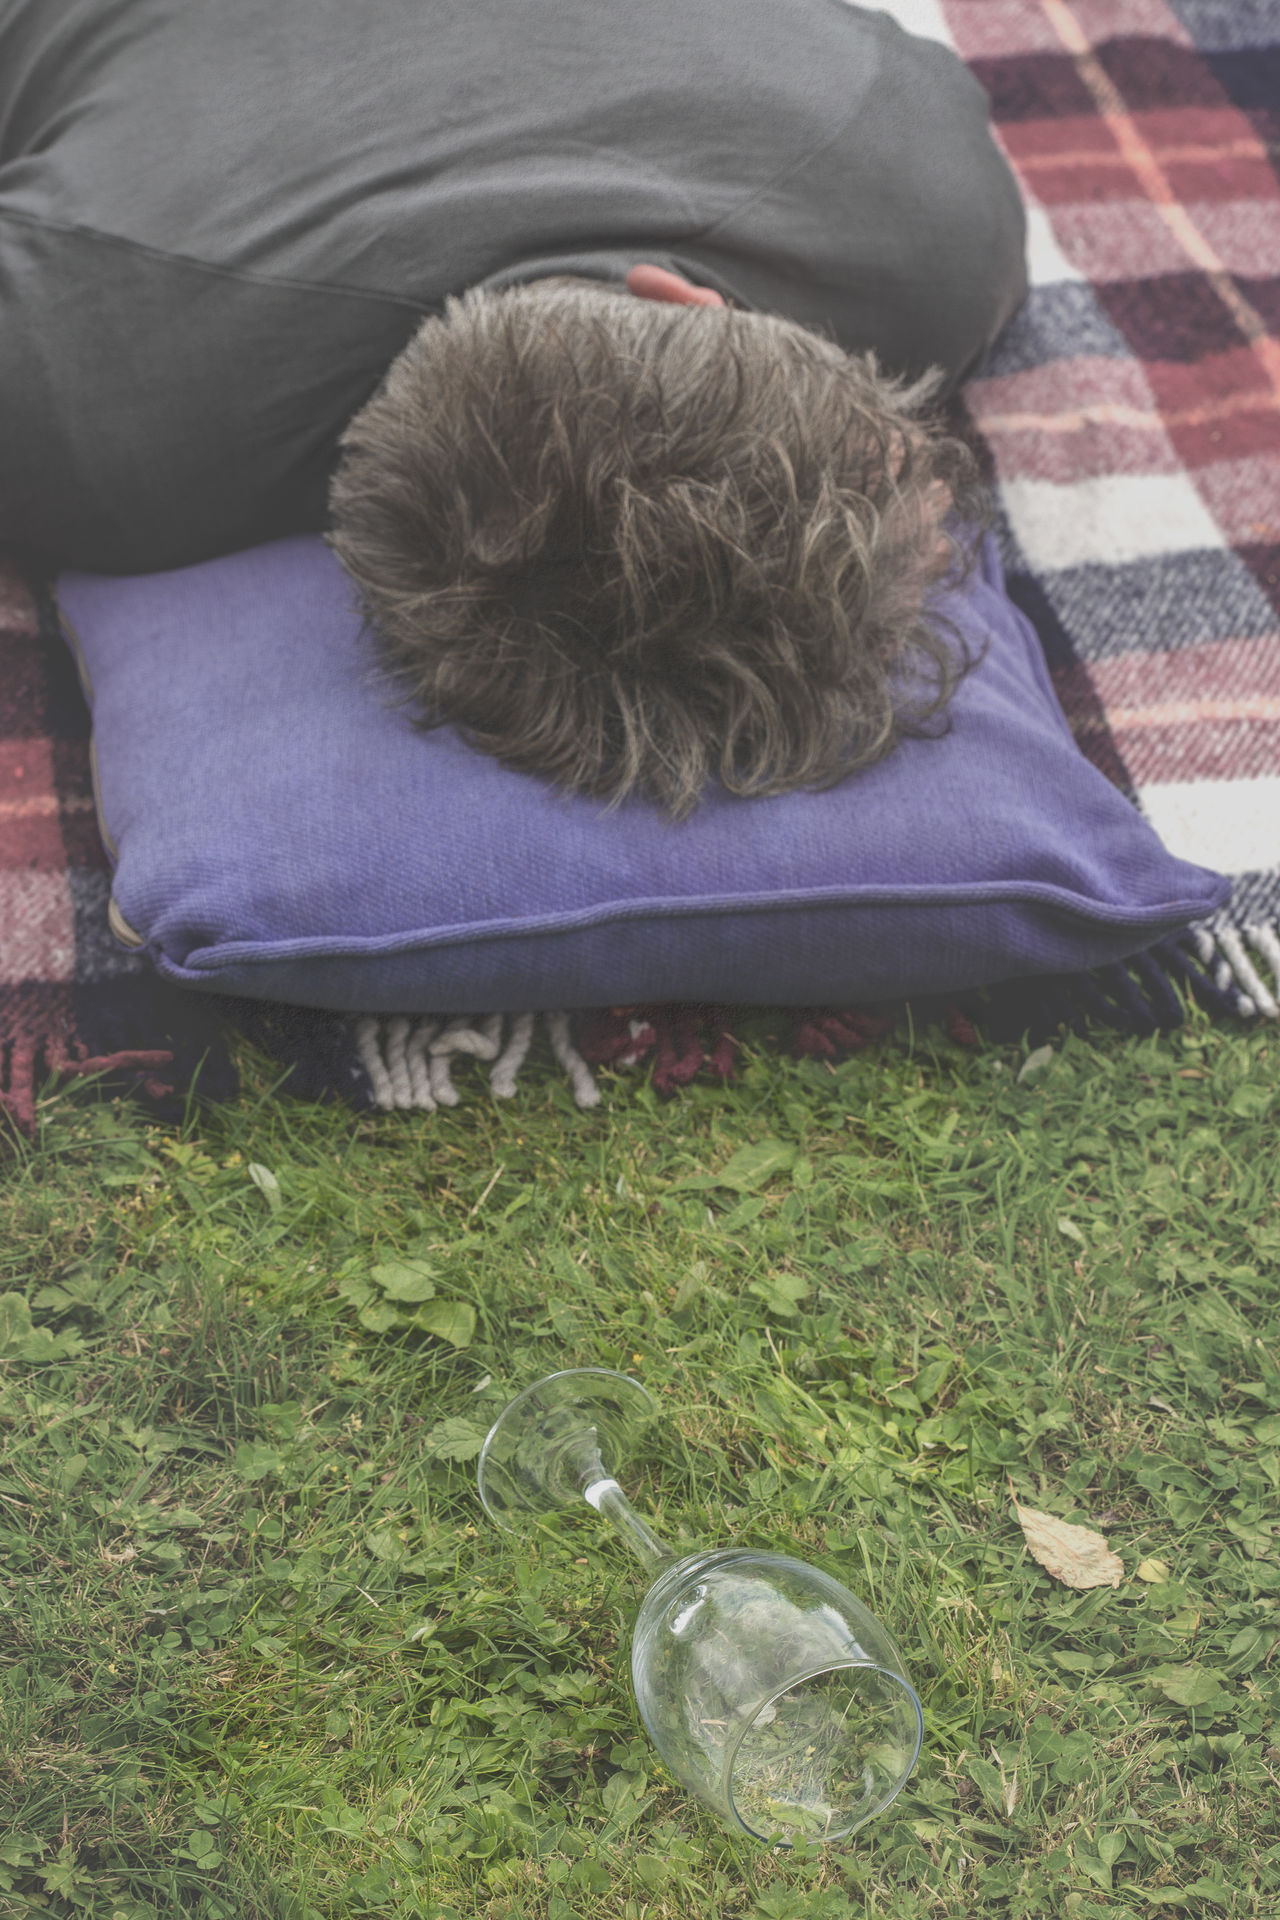 Man lying down in garden sleeping with fallen empty wine glass in grass Alcohol Alcoholism Asleep Close-up Drunk Elderly, Empty Flat Out Grass Grassy Grey Haired Lying Down Lying On The Grass Male Man Outdoors Relaxation Resting Sleeping Summer Unconcious Wine Wine Glass